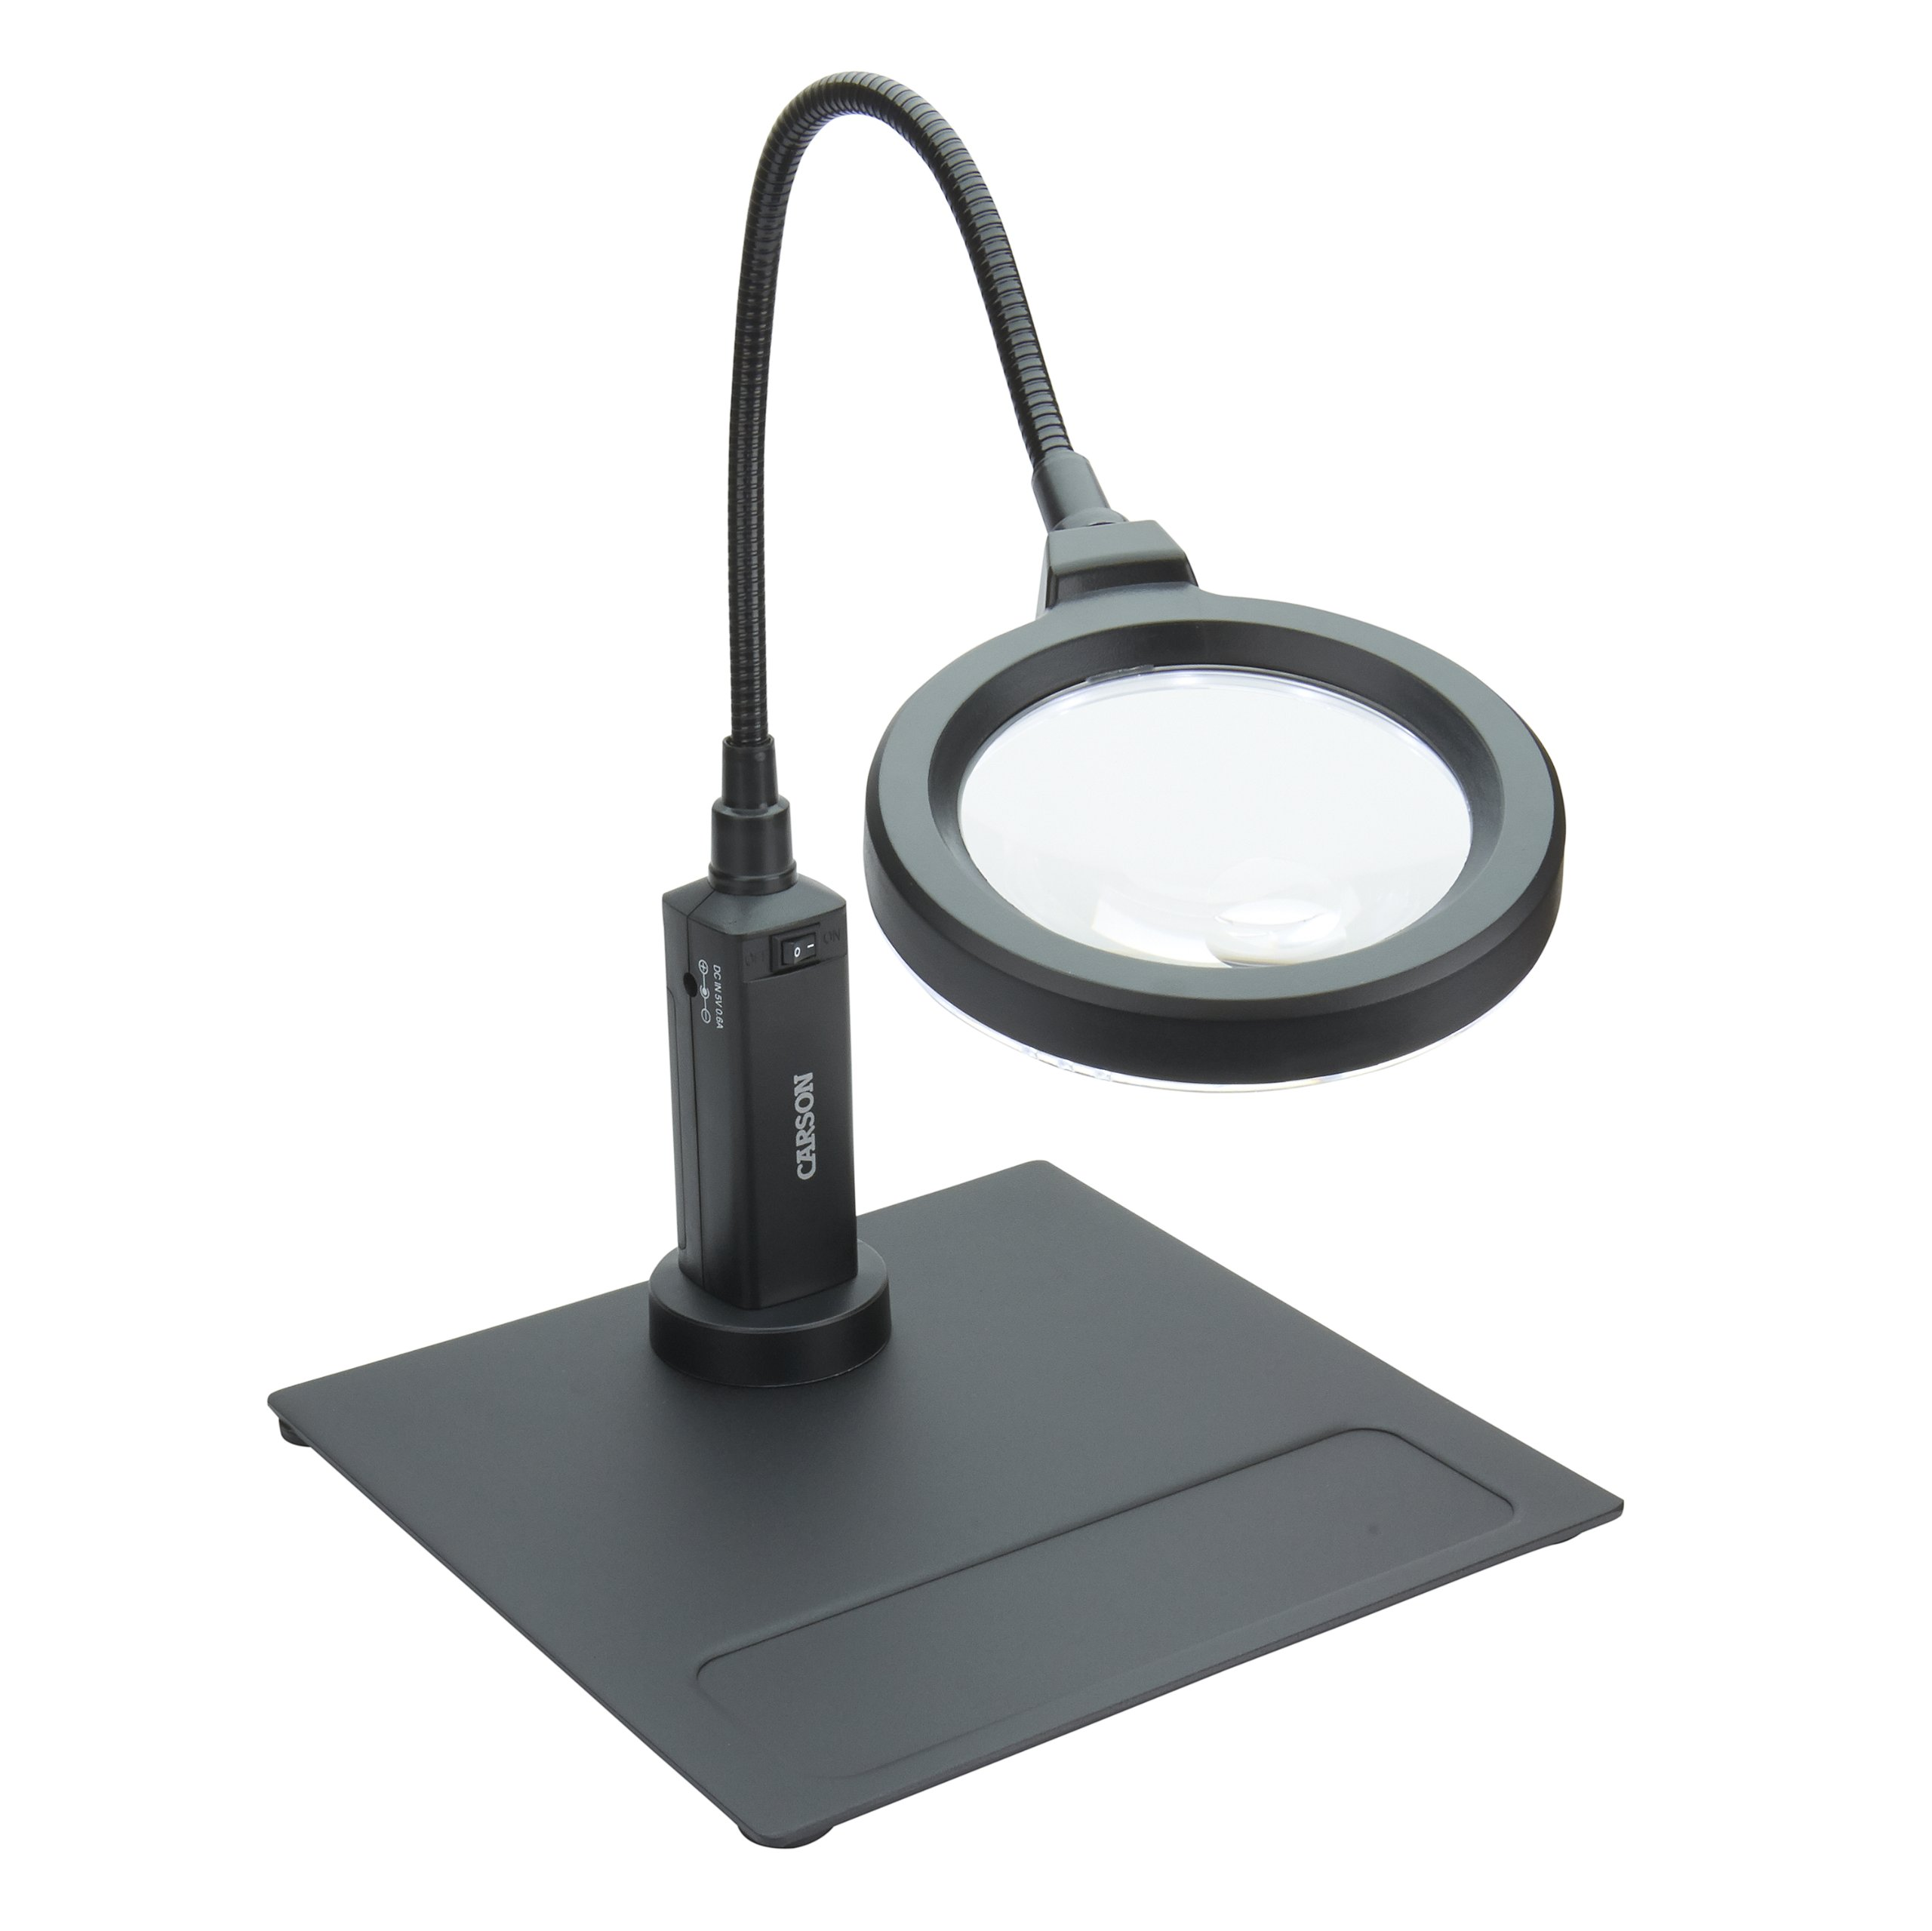 Carson MagniFlex Pro 2x LED Lighted Gooseneck Flexible Magnifier with 4x Spots Lens and Magnetic Base (CP-90) by Carson